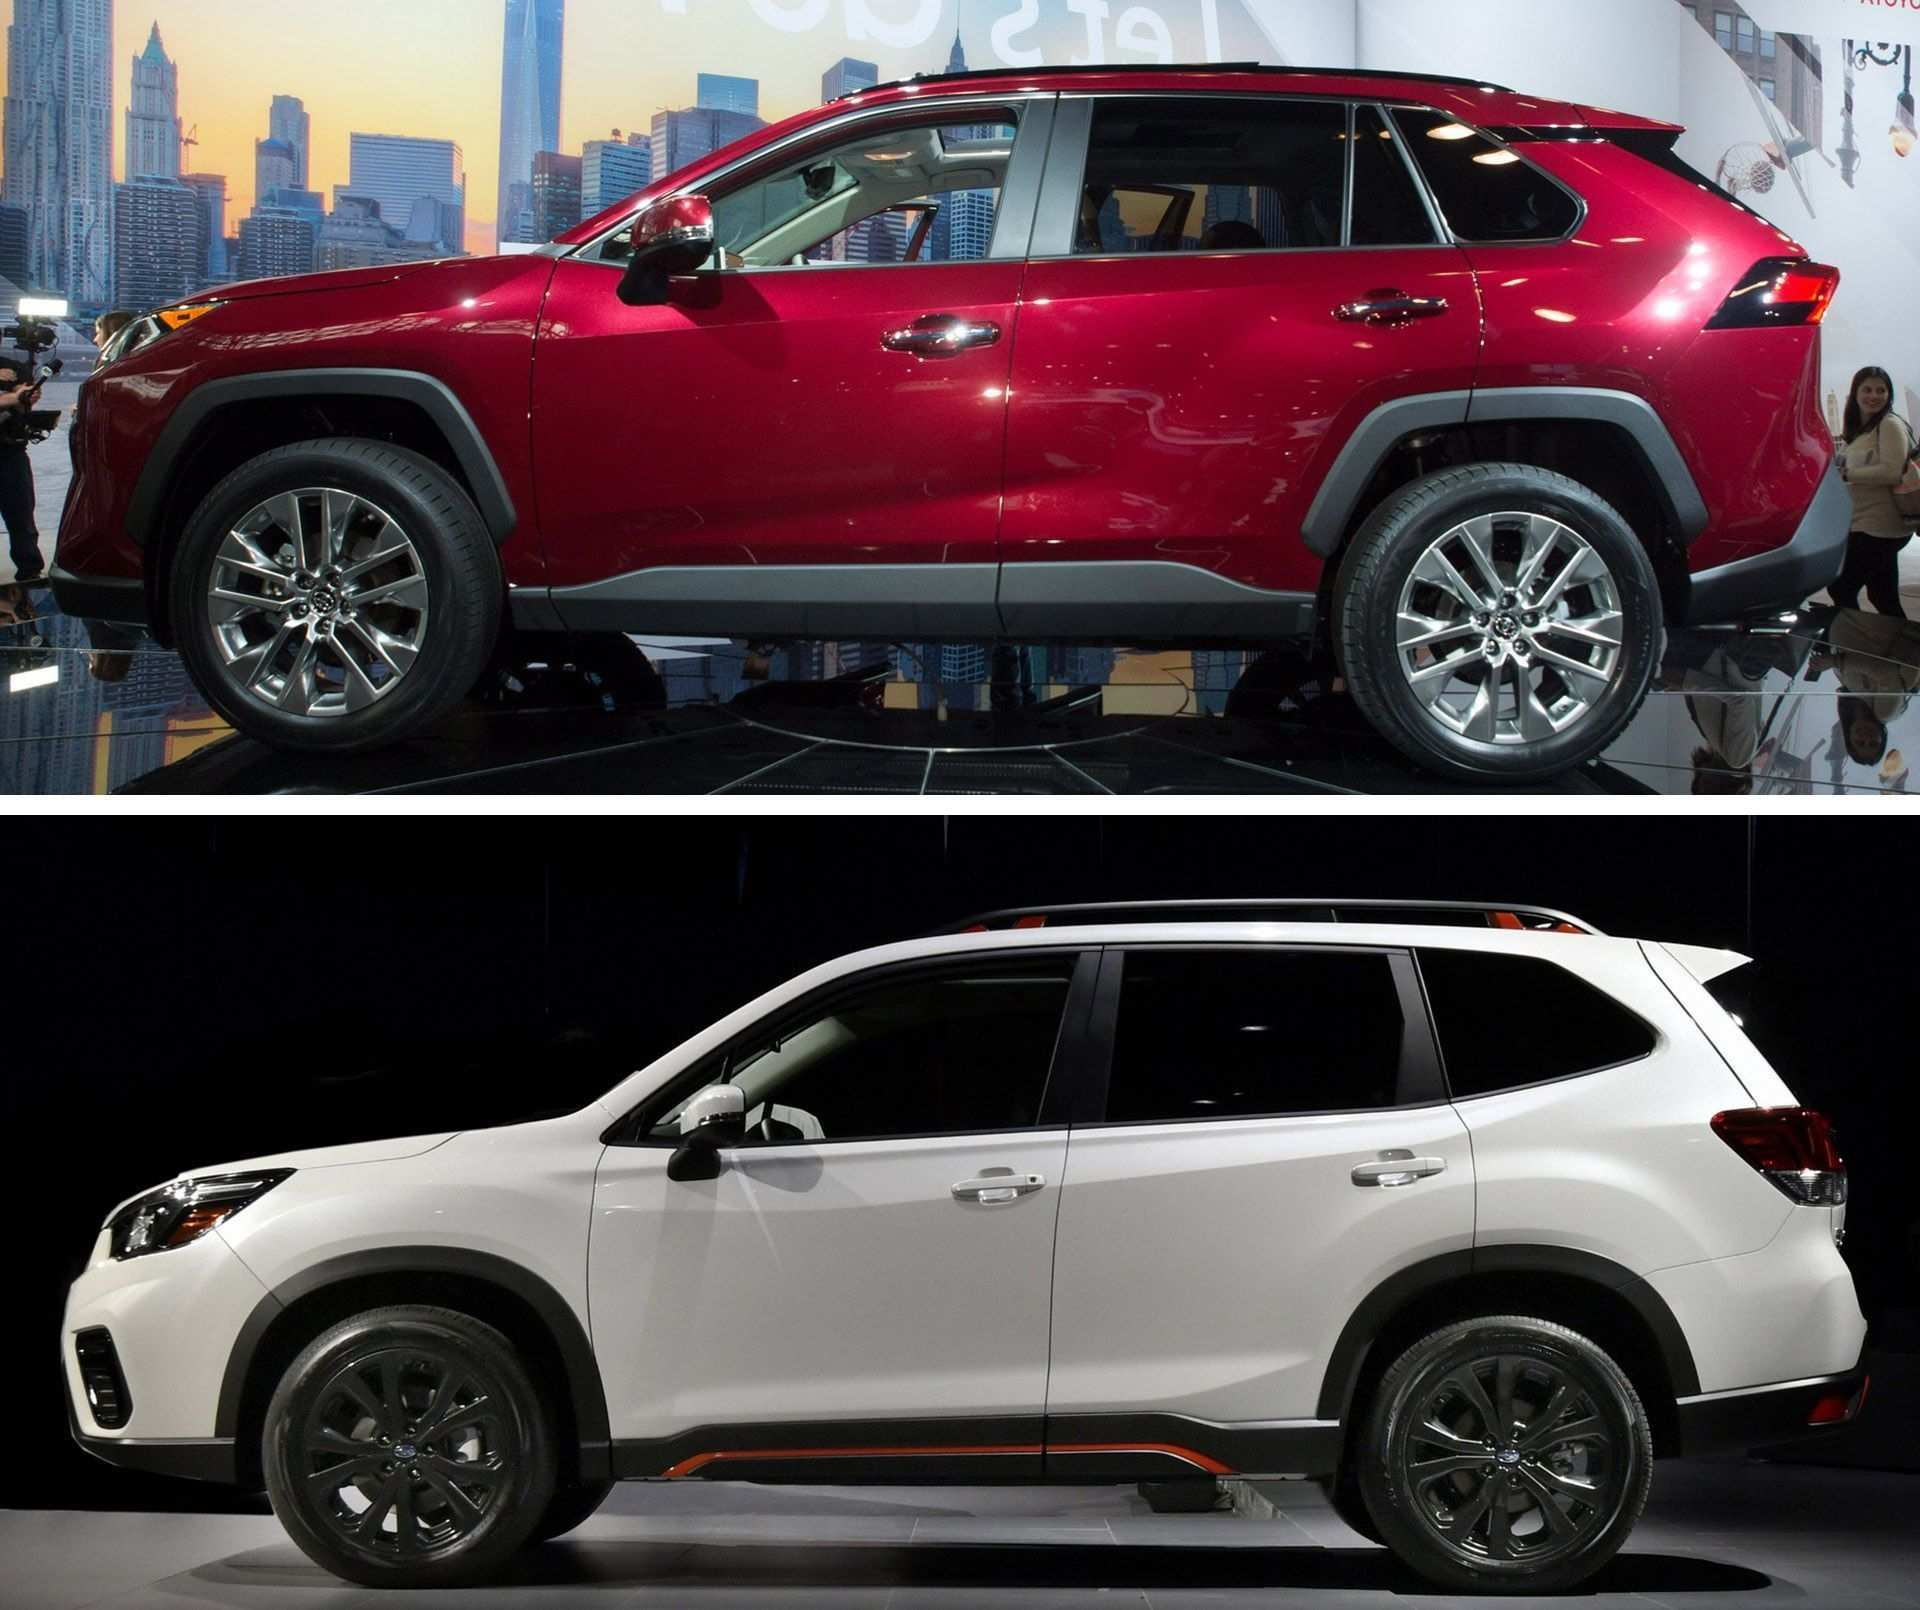 57 New Dimensions Of 2019 Subaru Forester Speed Test